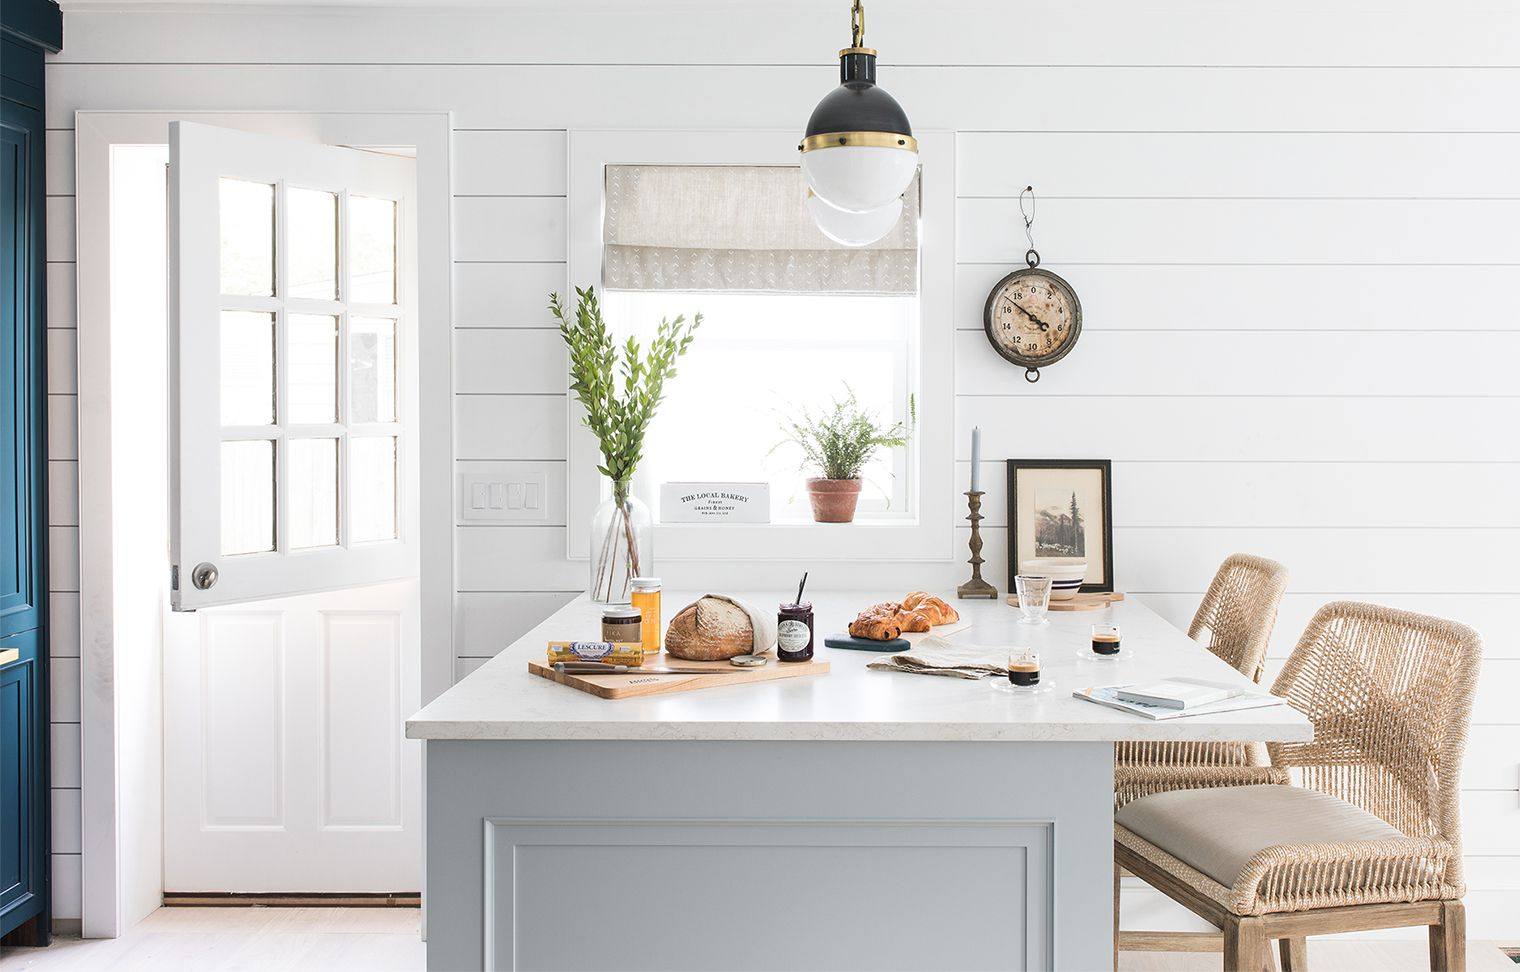 Our Beach House Kitchen: The Reveal | Beach house kitchens, Kitchens ...